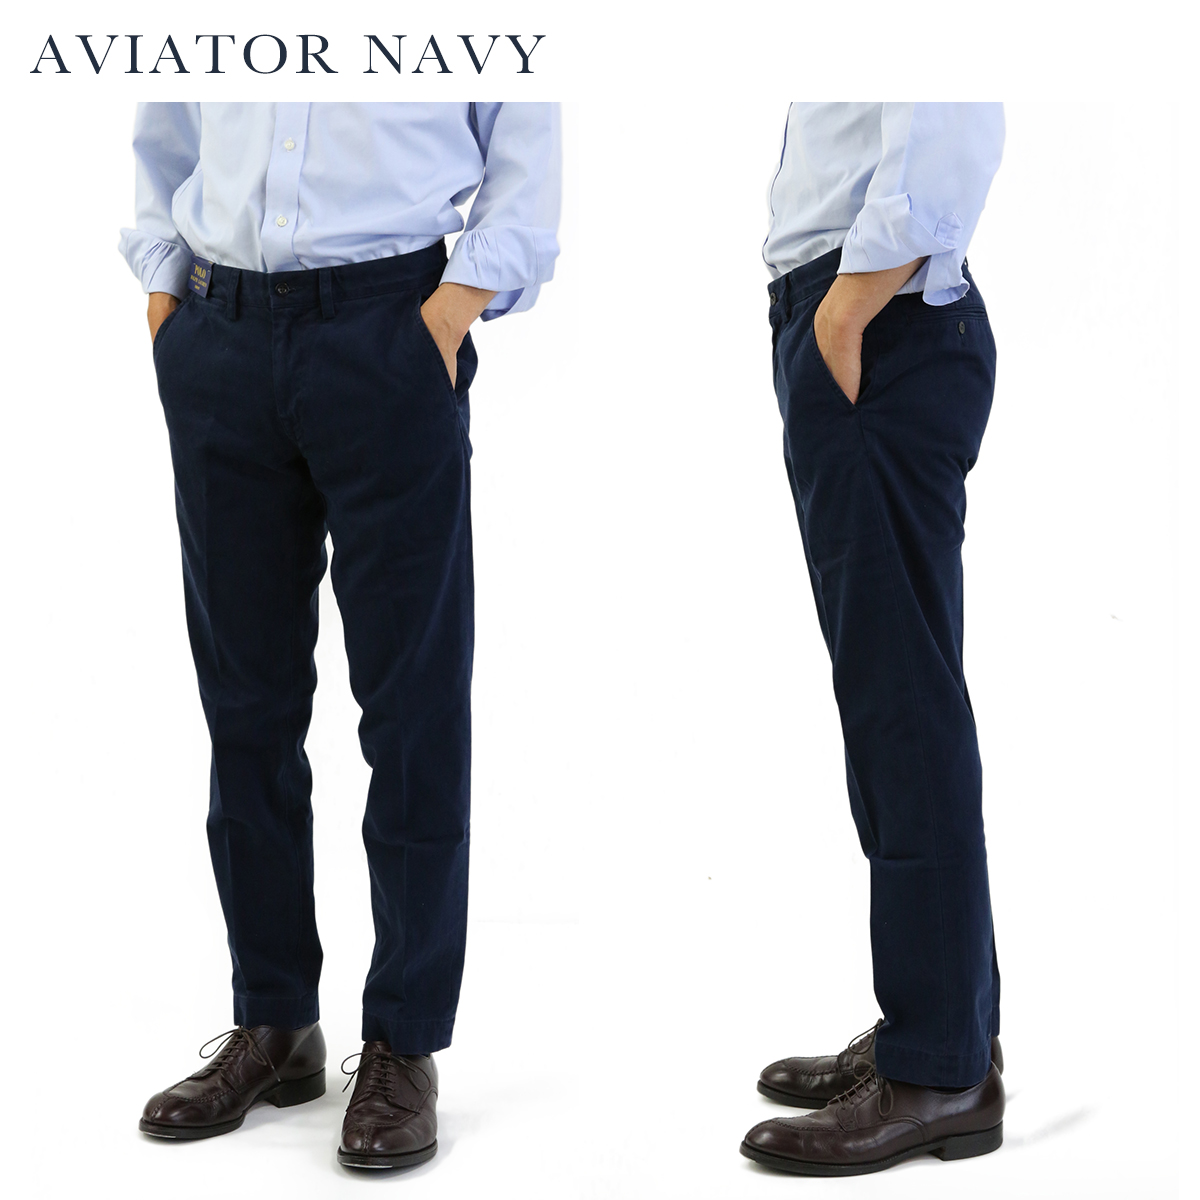 ea957f6e7acf1 Polo Ralph Lauren Slim Fit Hudson Trousers Aviator Navy - Nils ...